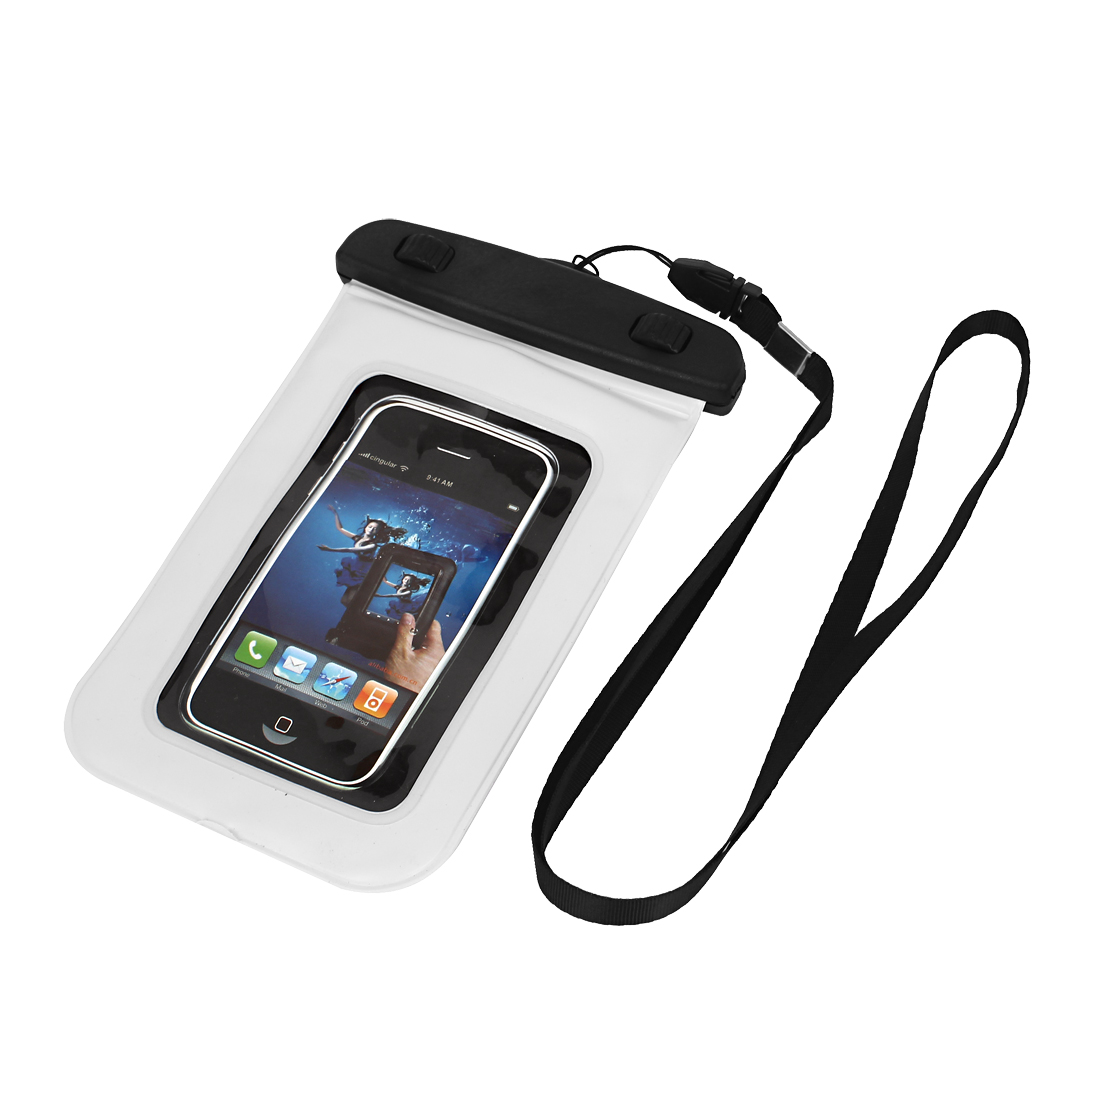 "Transparent Guard Pouch Waterproof Bag Dry Cover Case White for 4"" Mobile Phone"